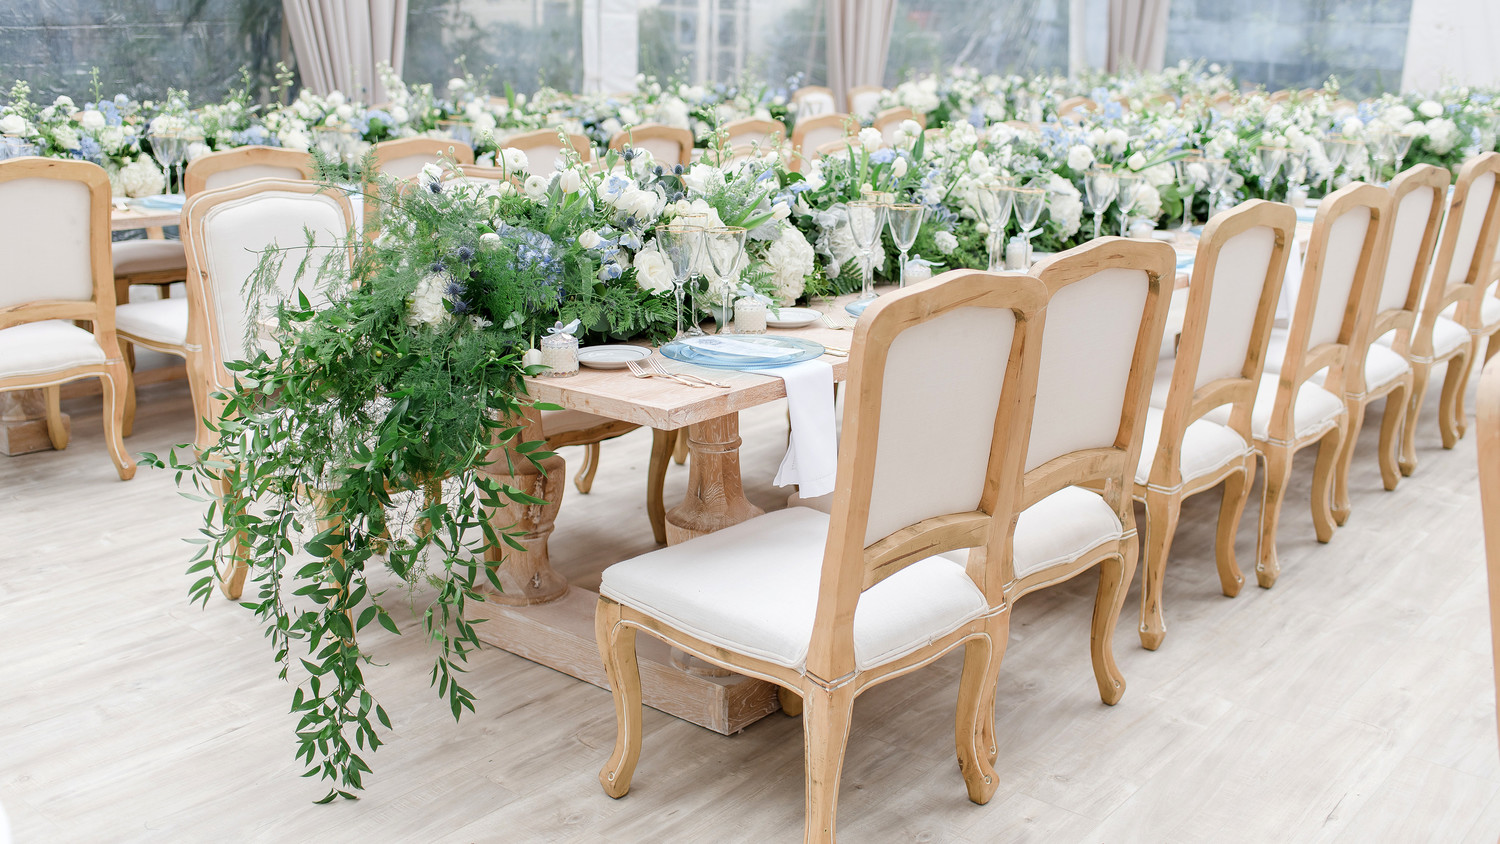 charitable baptism celebration long tables seating chairs greenery centerpiecees